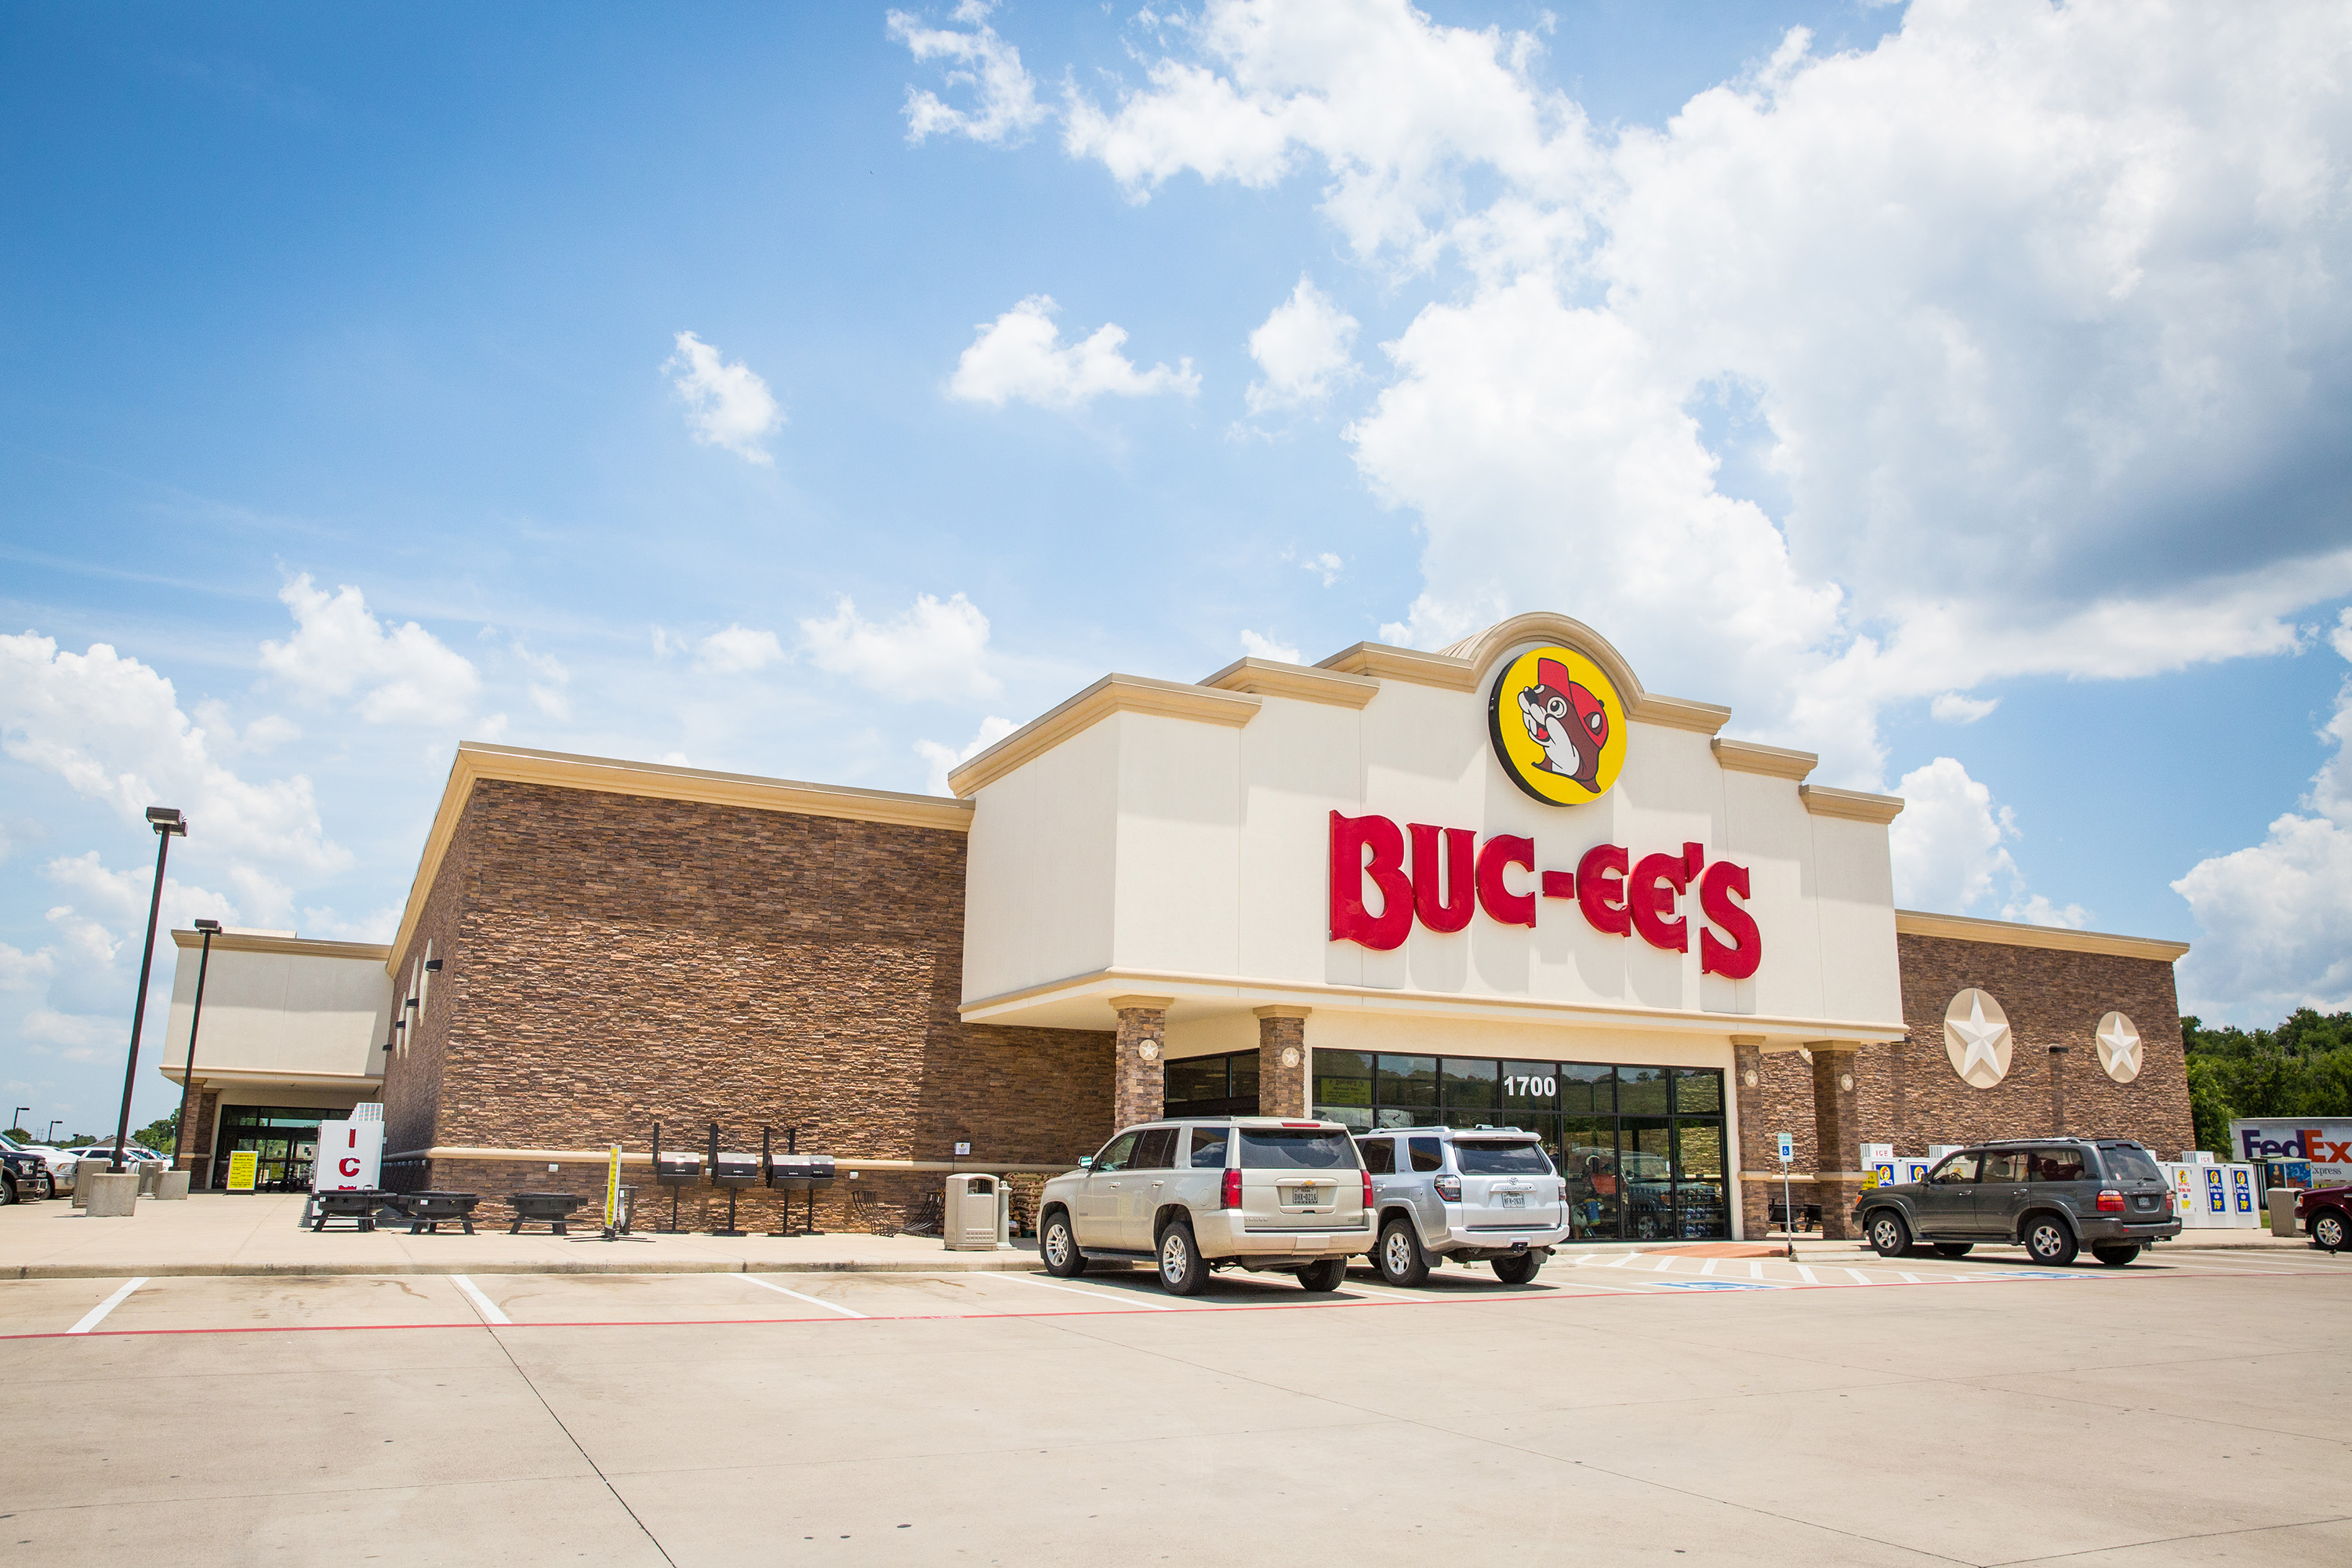 The exterior of Buc-ee's.